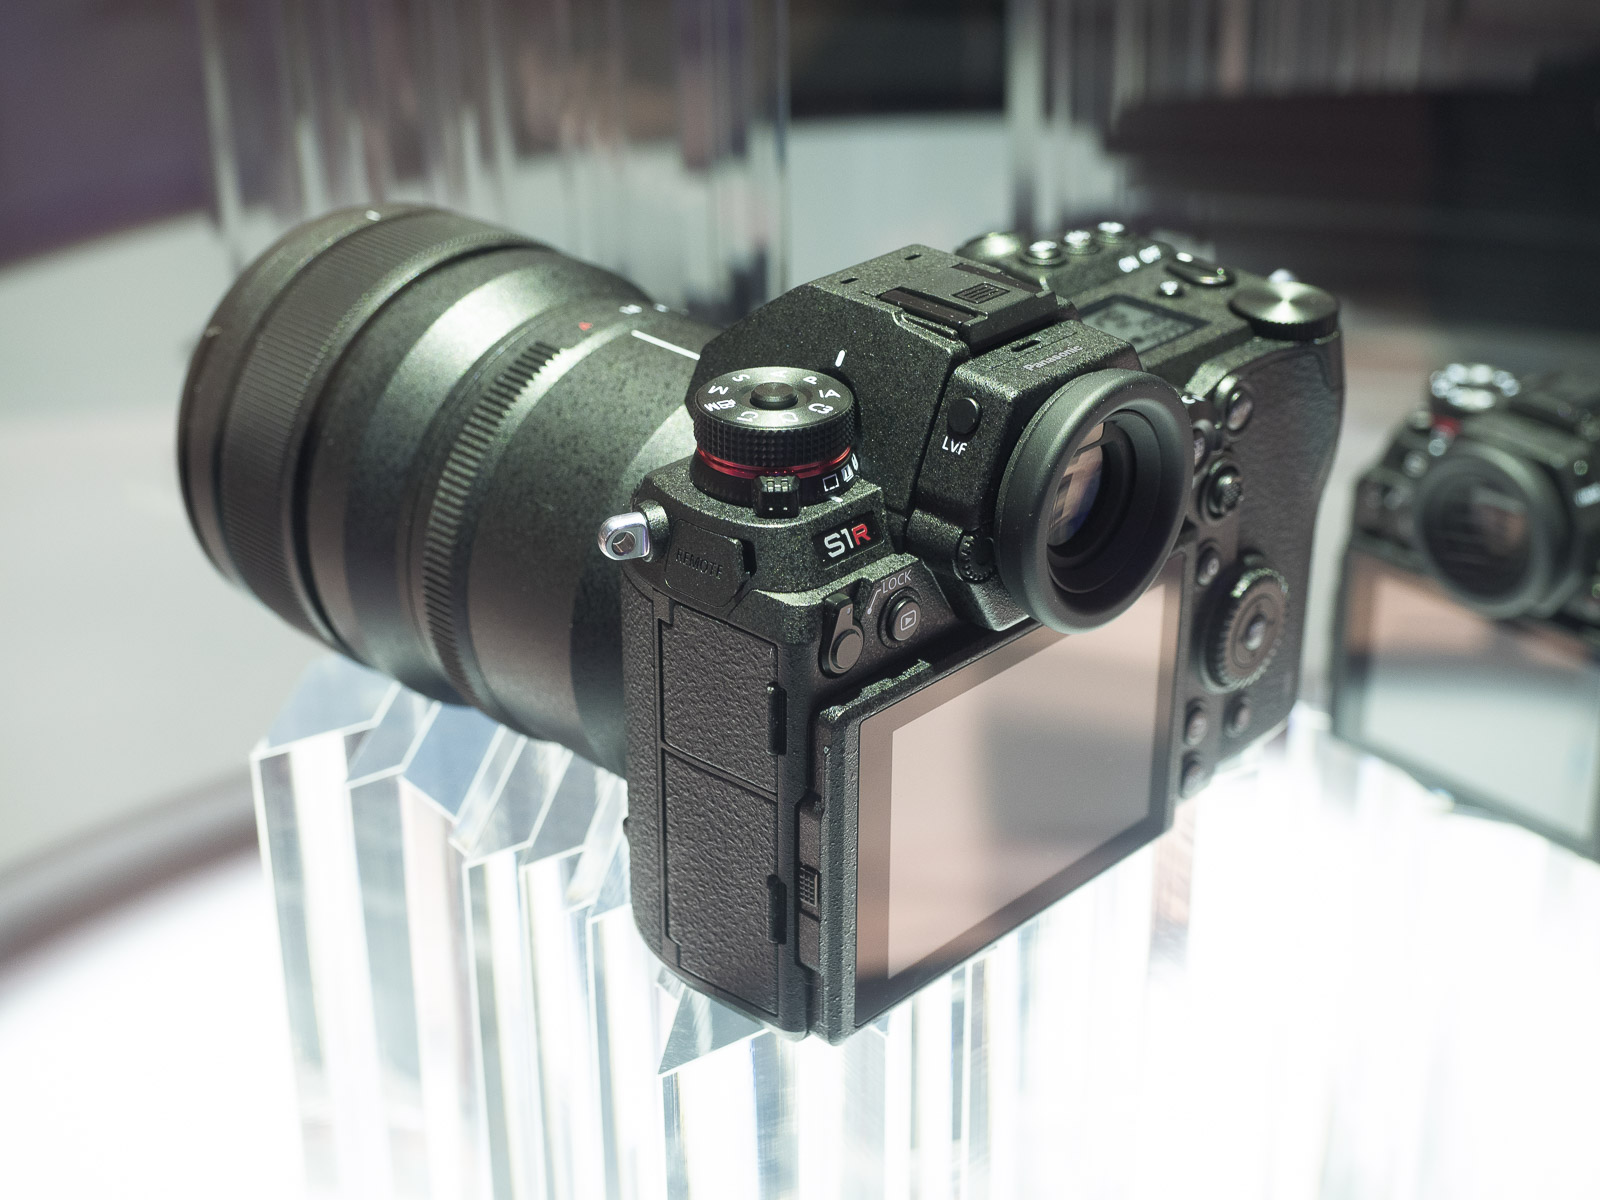 000cd5782a ... Sankei - one of the largest media companies in Japan) recently reported  that the prices of the upcoming Panasonic S1 S1R full-frame mirrorless  cameras ...